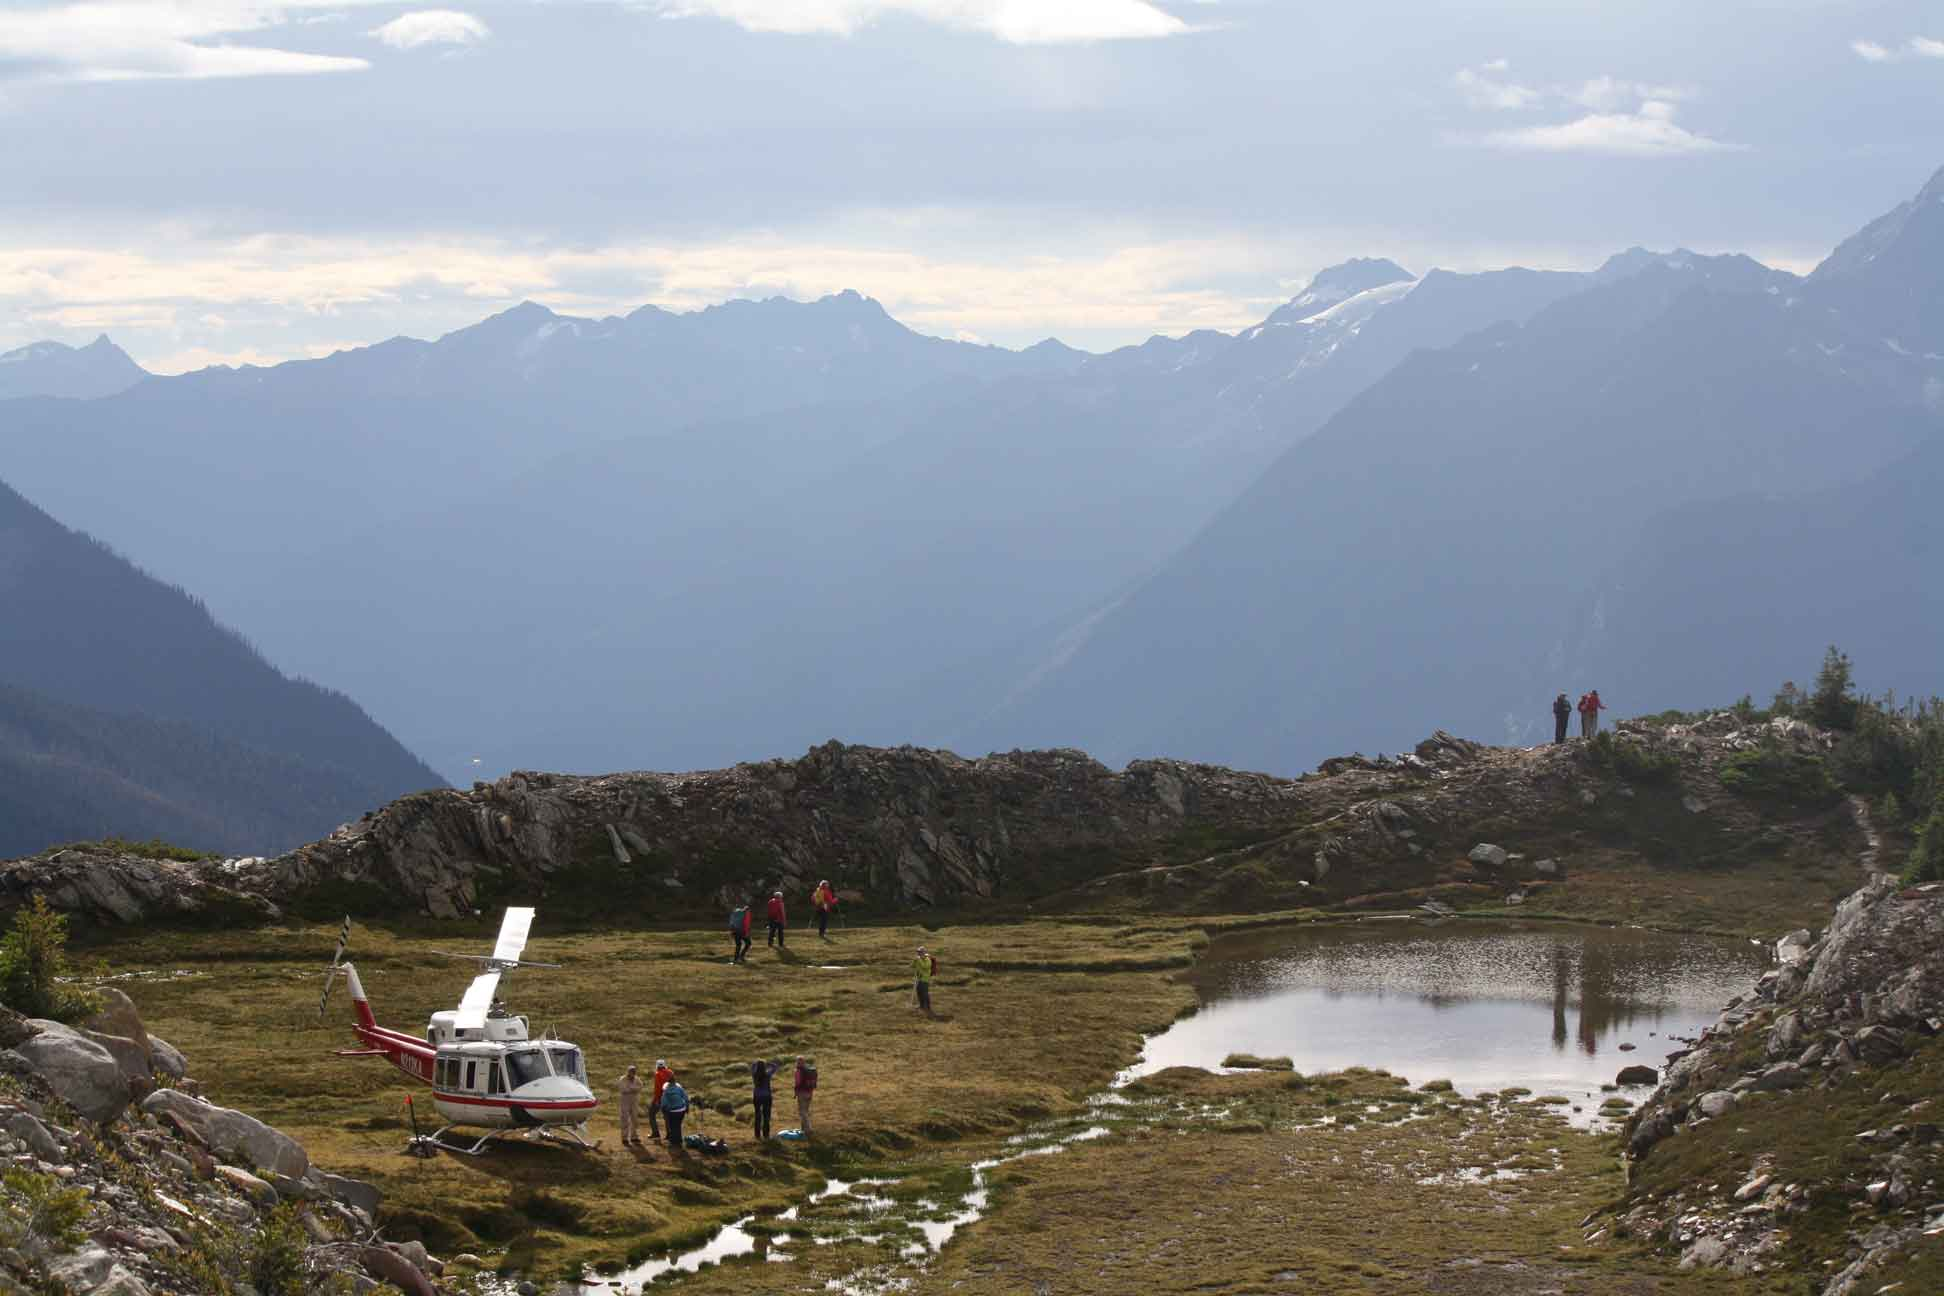 People exit a helicopter by a glacier lake with mountain scenery off the beaten path with CMH